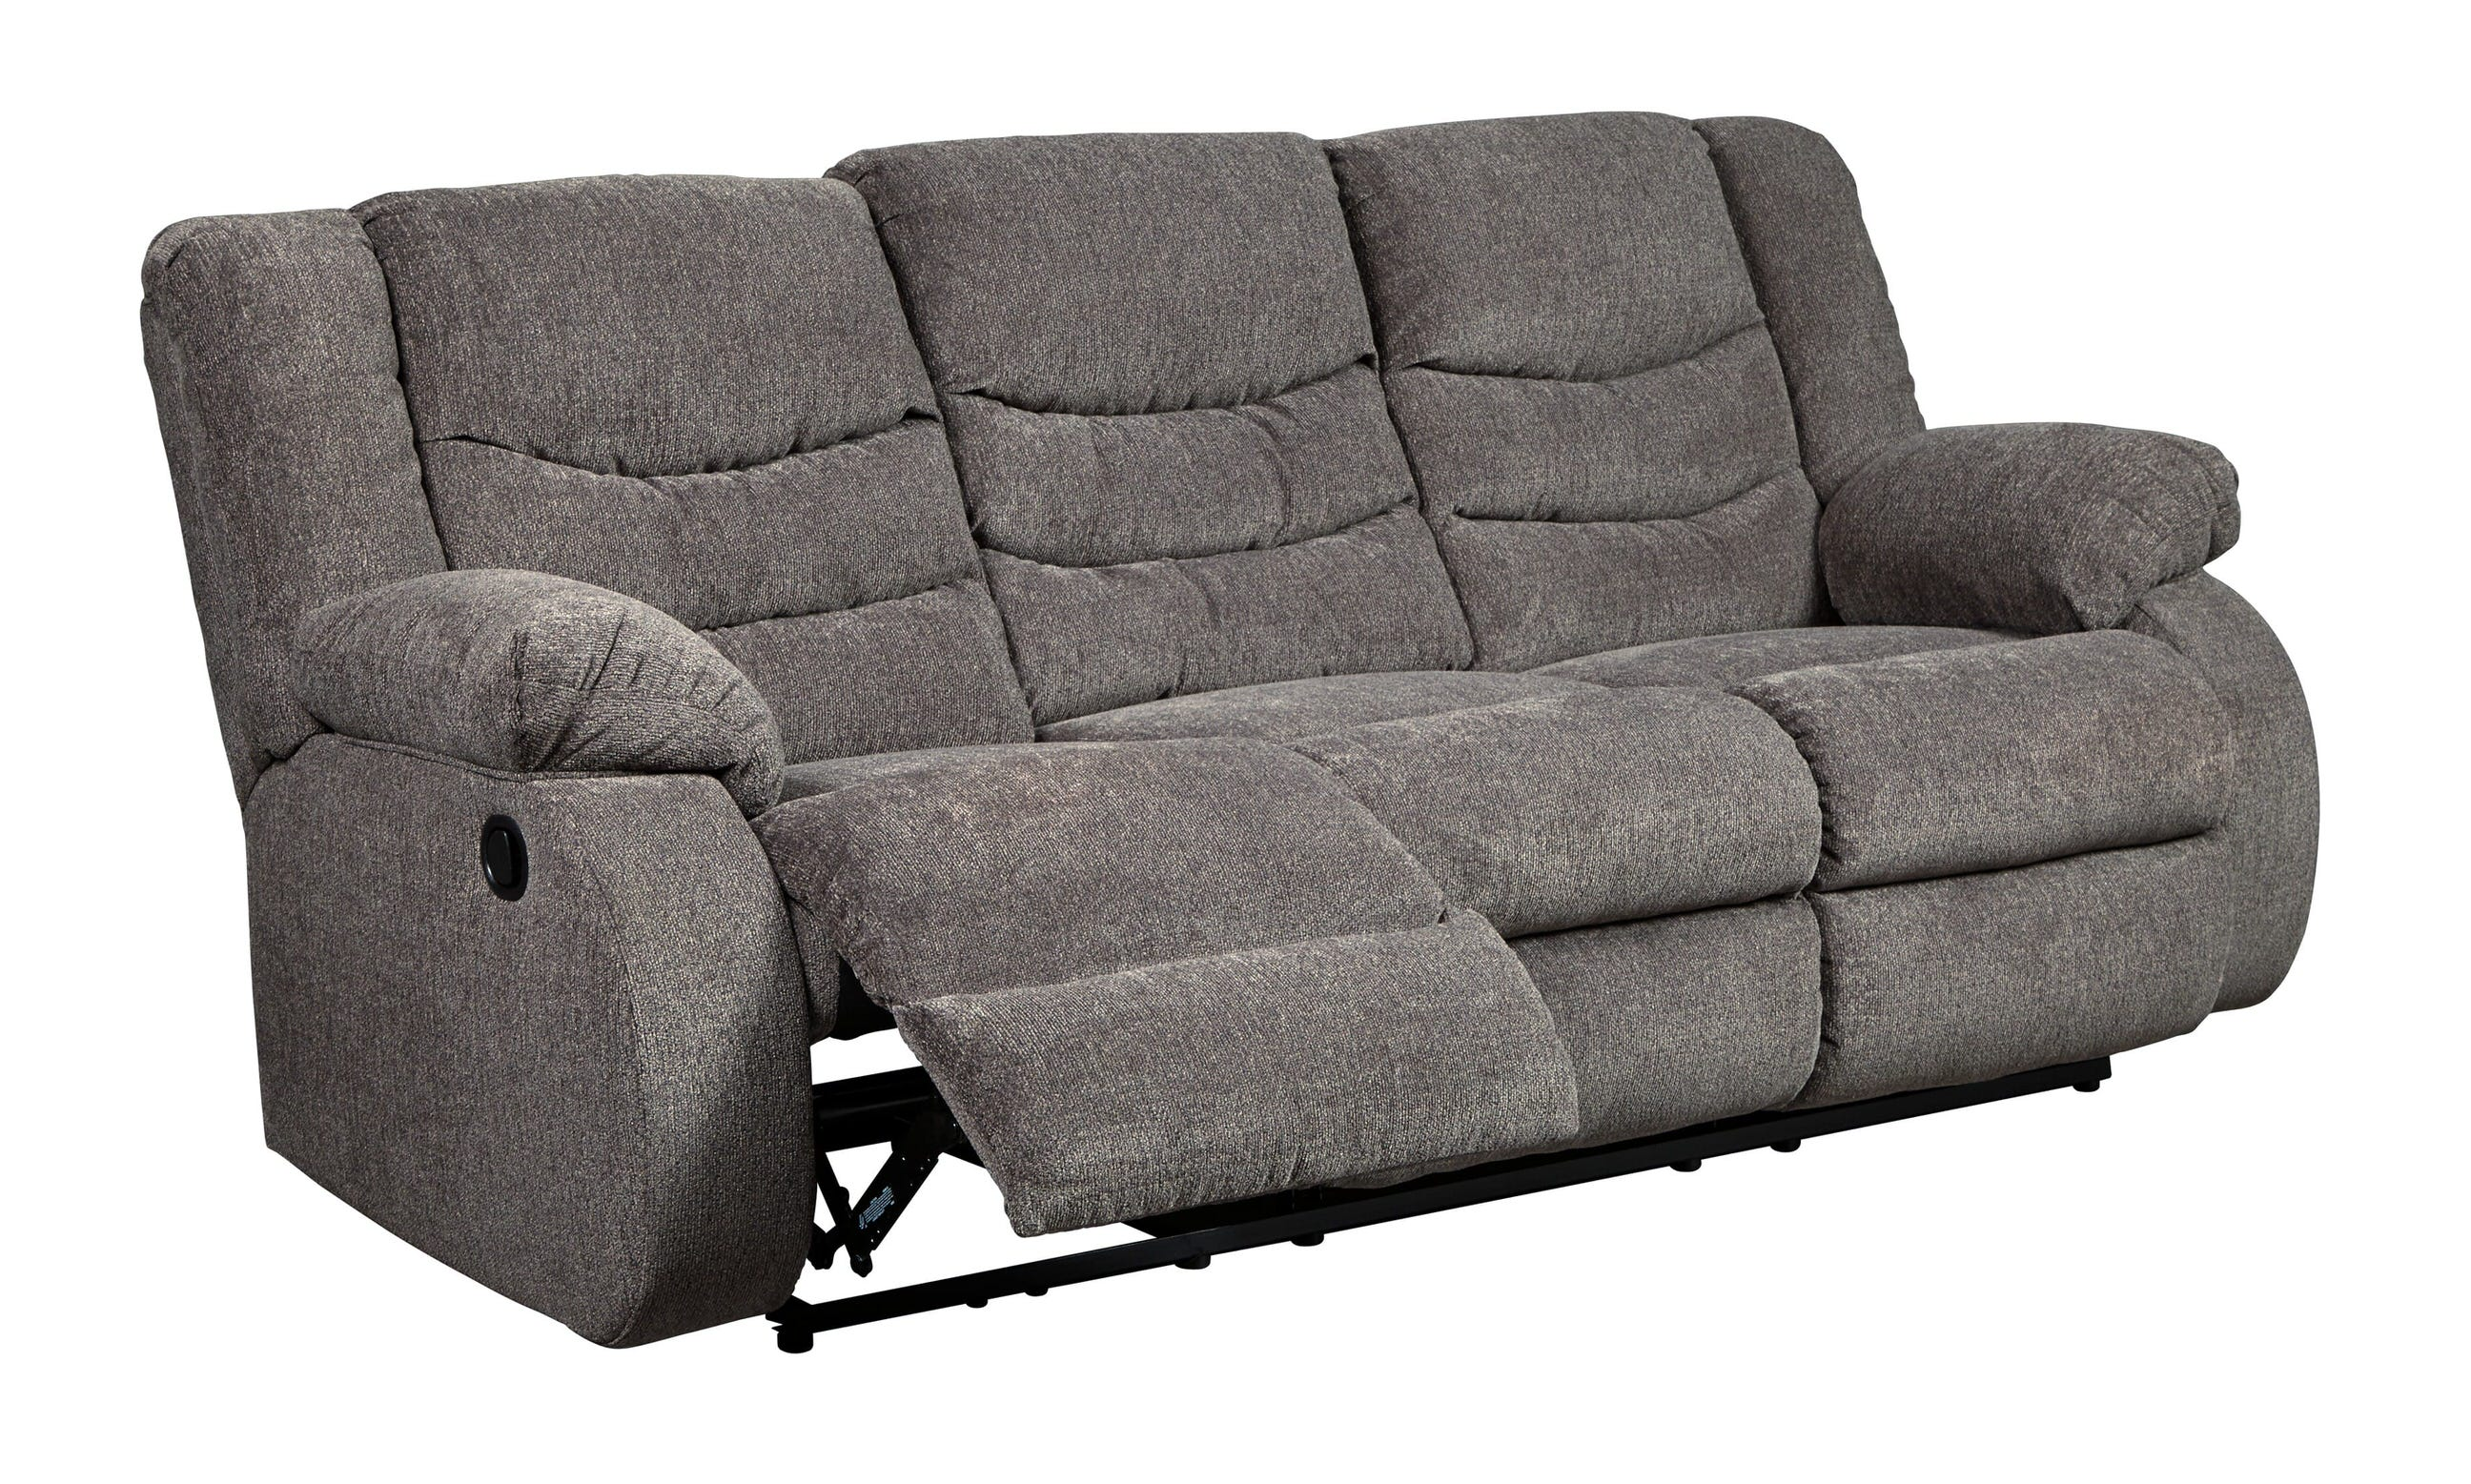 Superb Tulen Gray Reclining Sofa By Ashley Furniture Home Interior And Landscaping Mentranervesignezvosmurscom